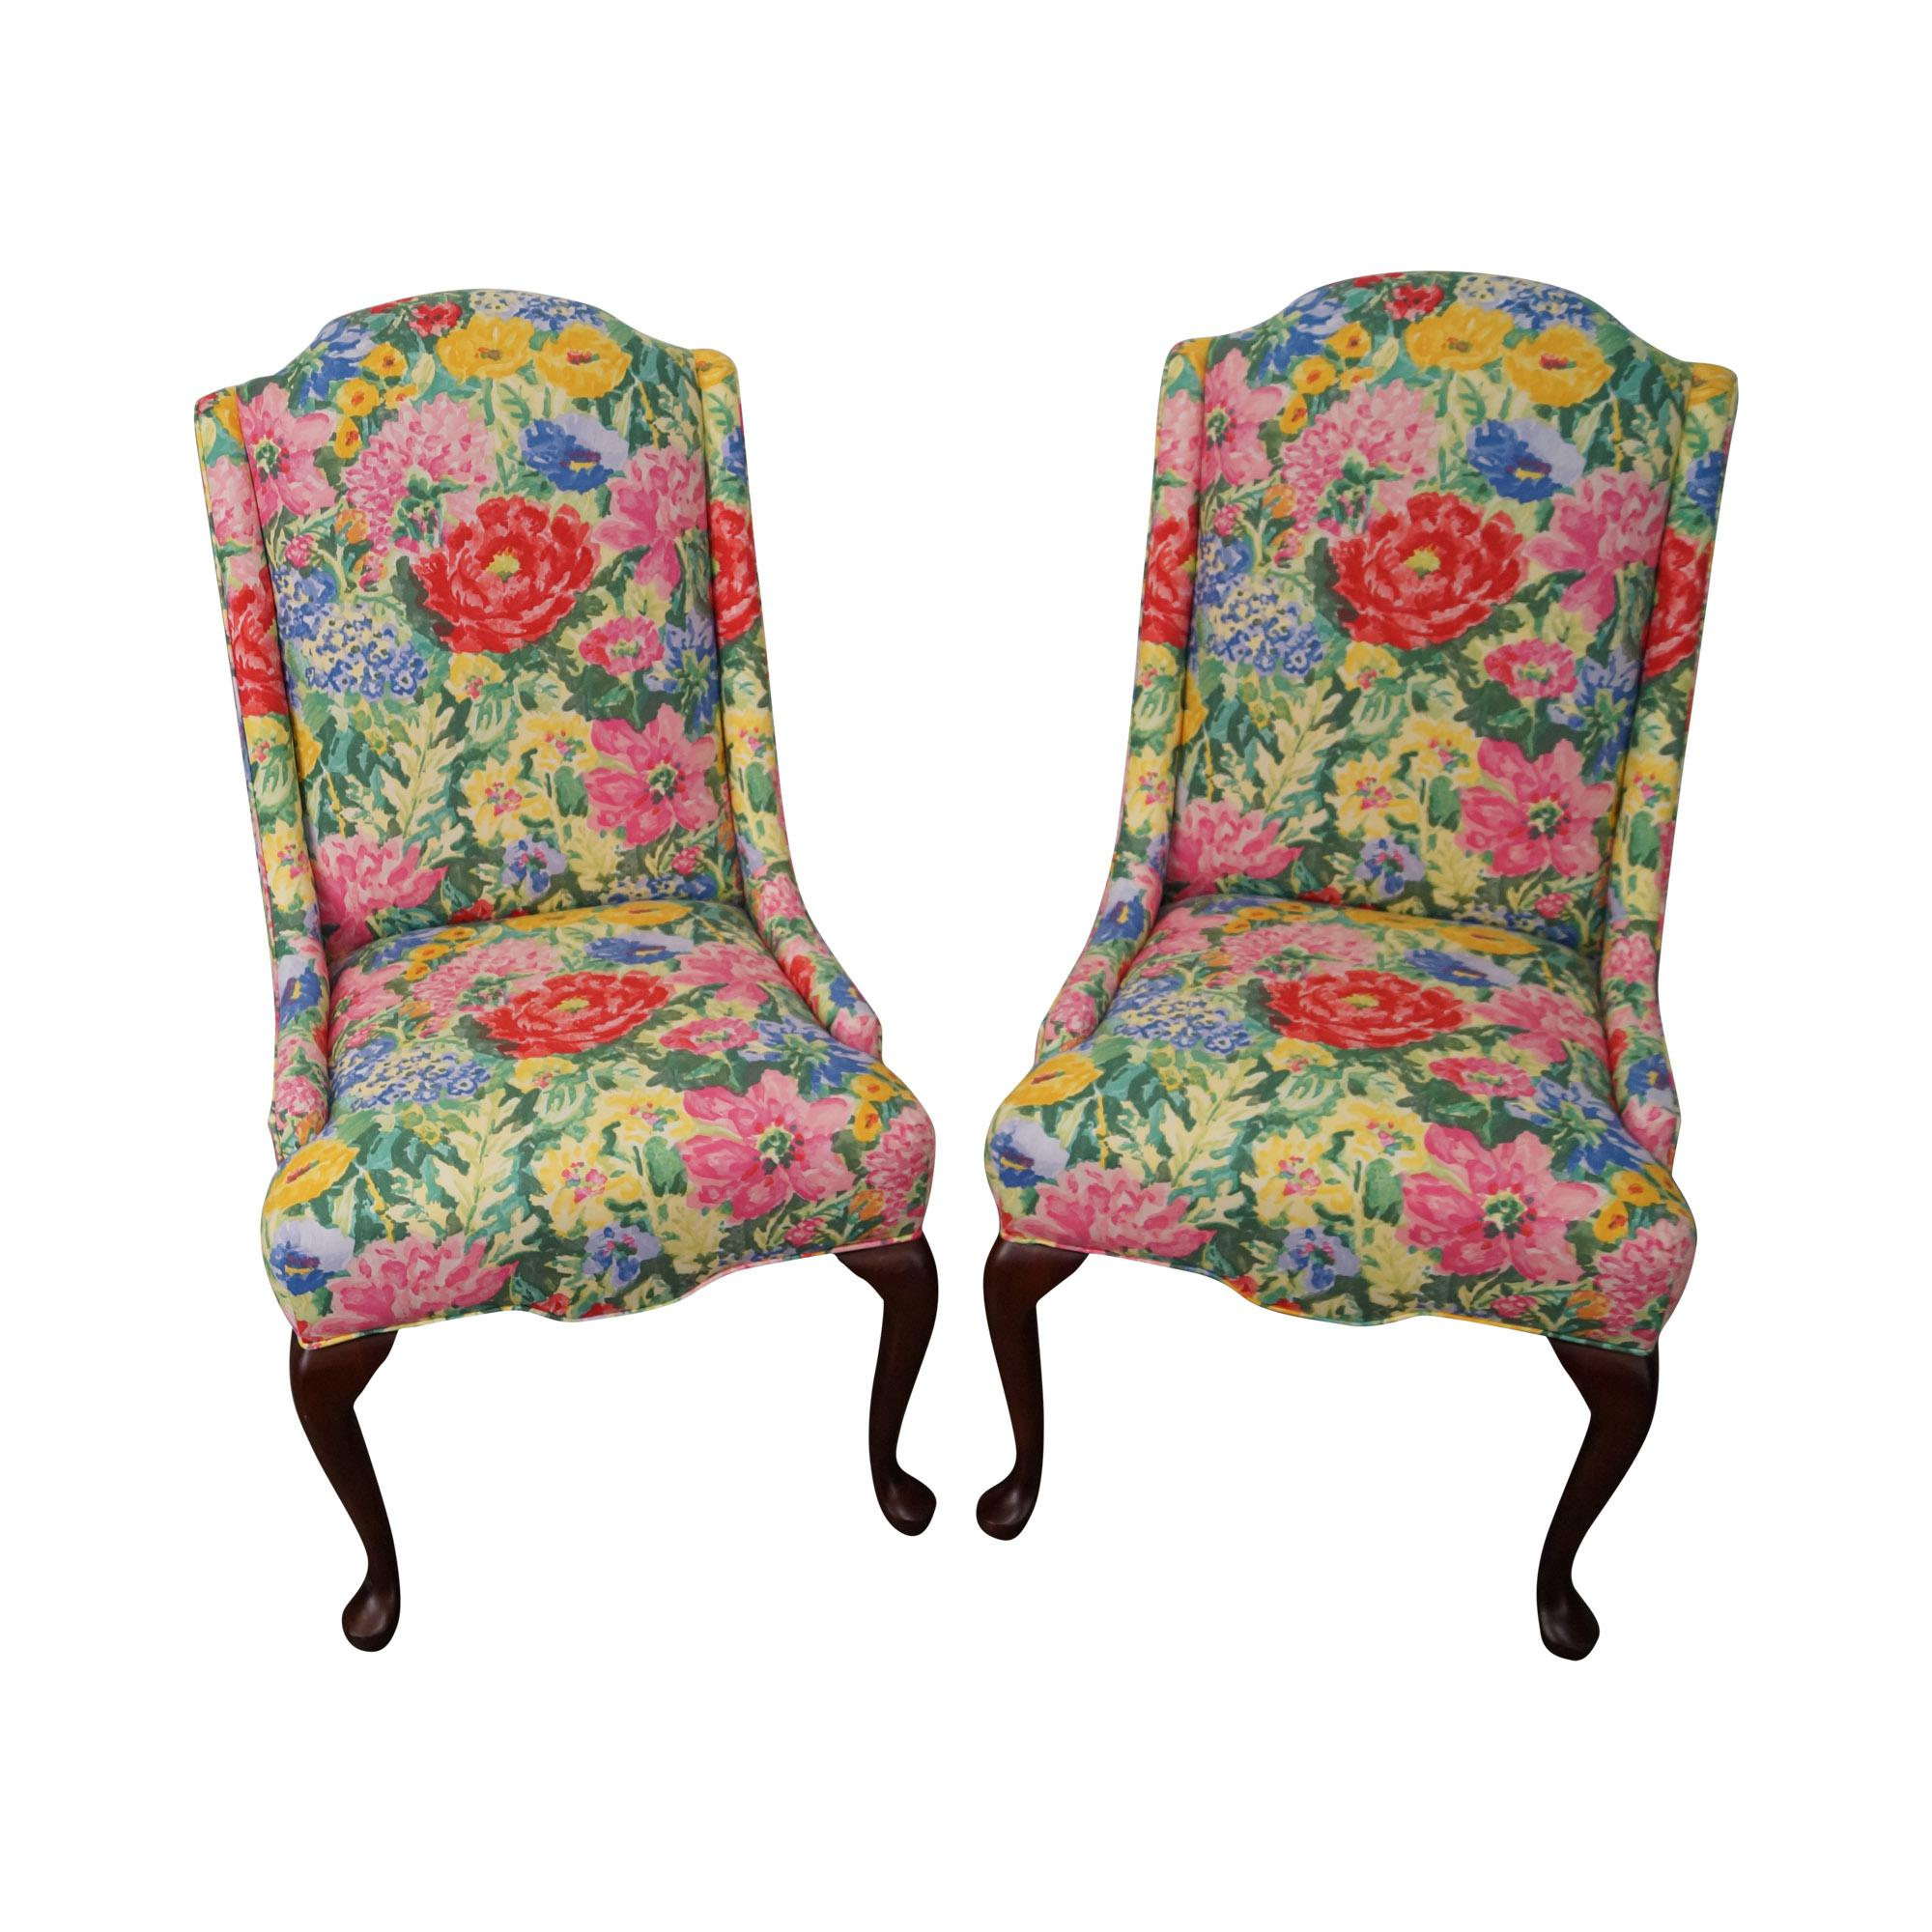 floral upholstered chair office piston pennsylvania house queen anne host